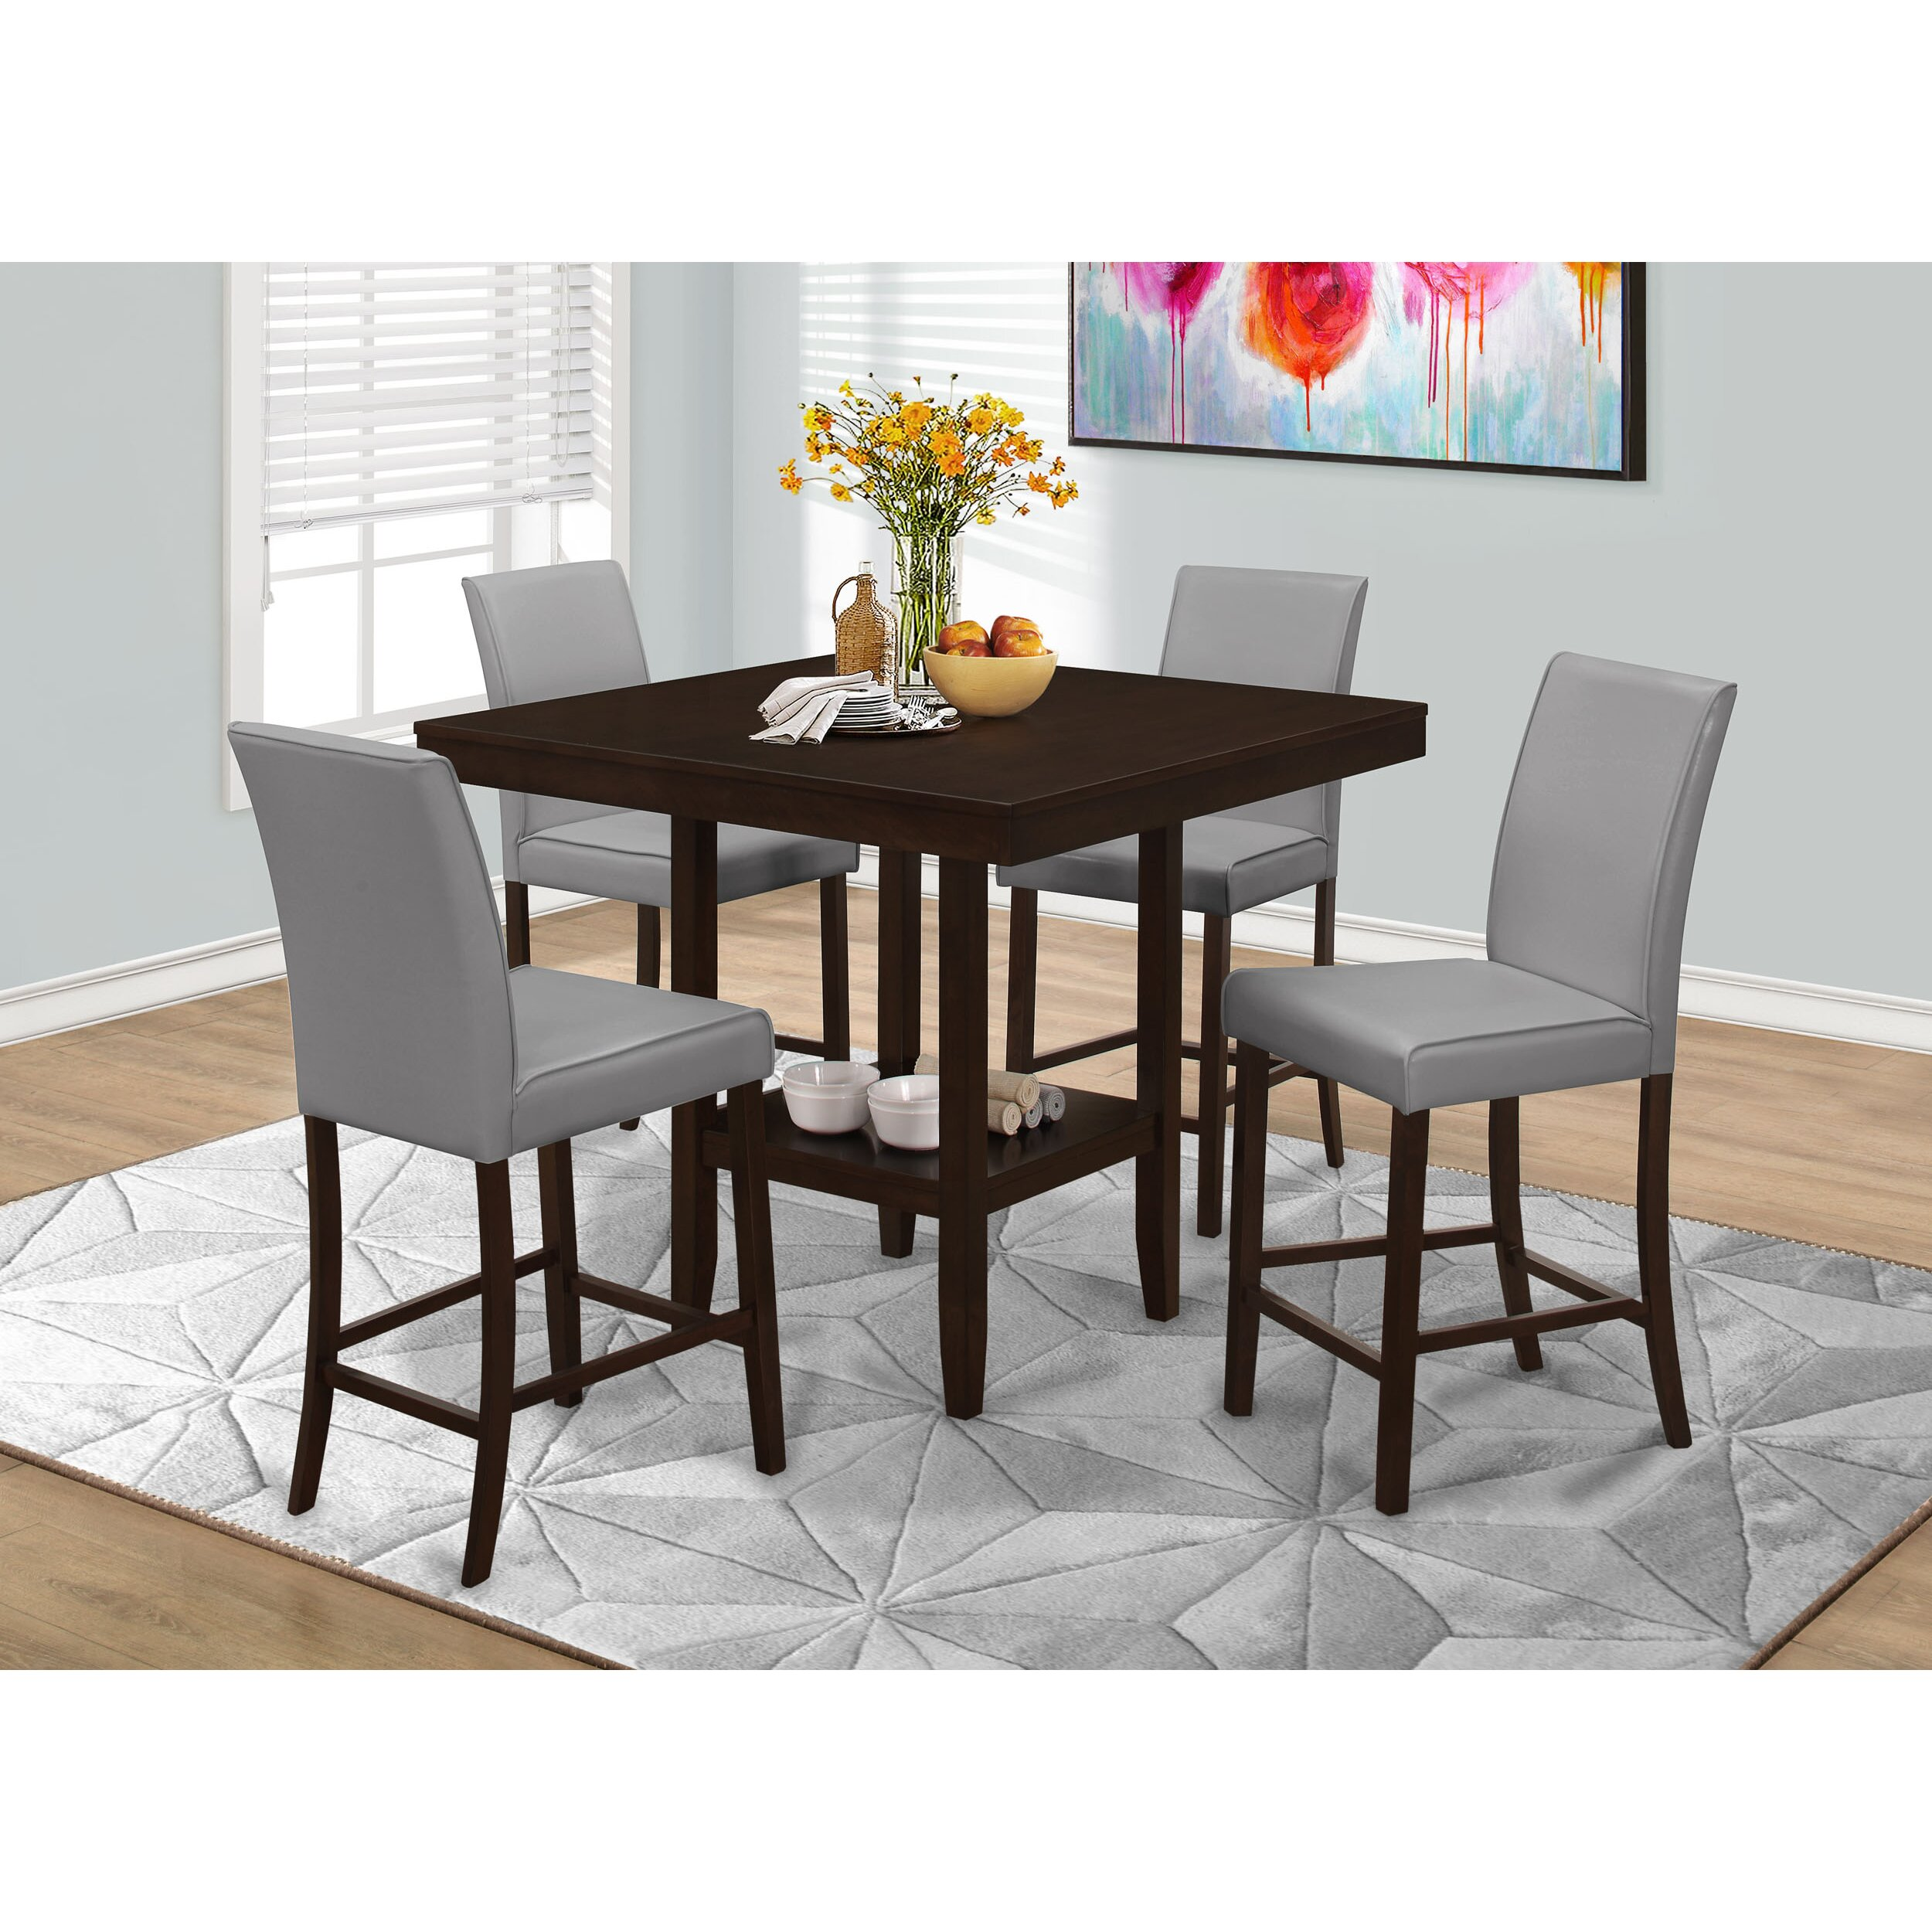 Specialties Inc Counter Height Dining Table Reviews Wayfair